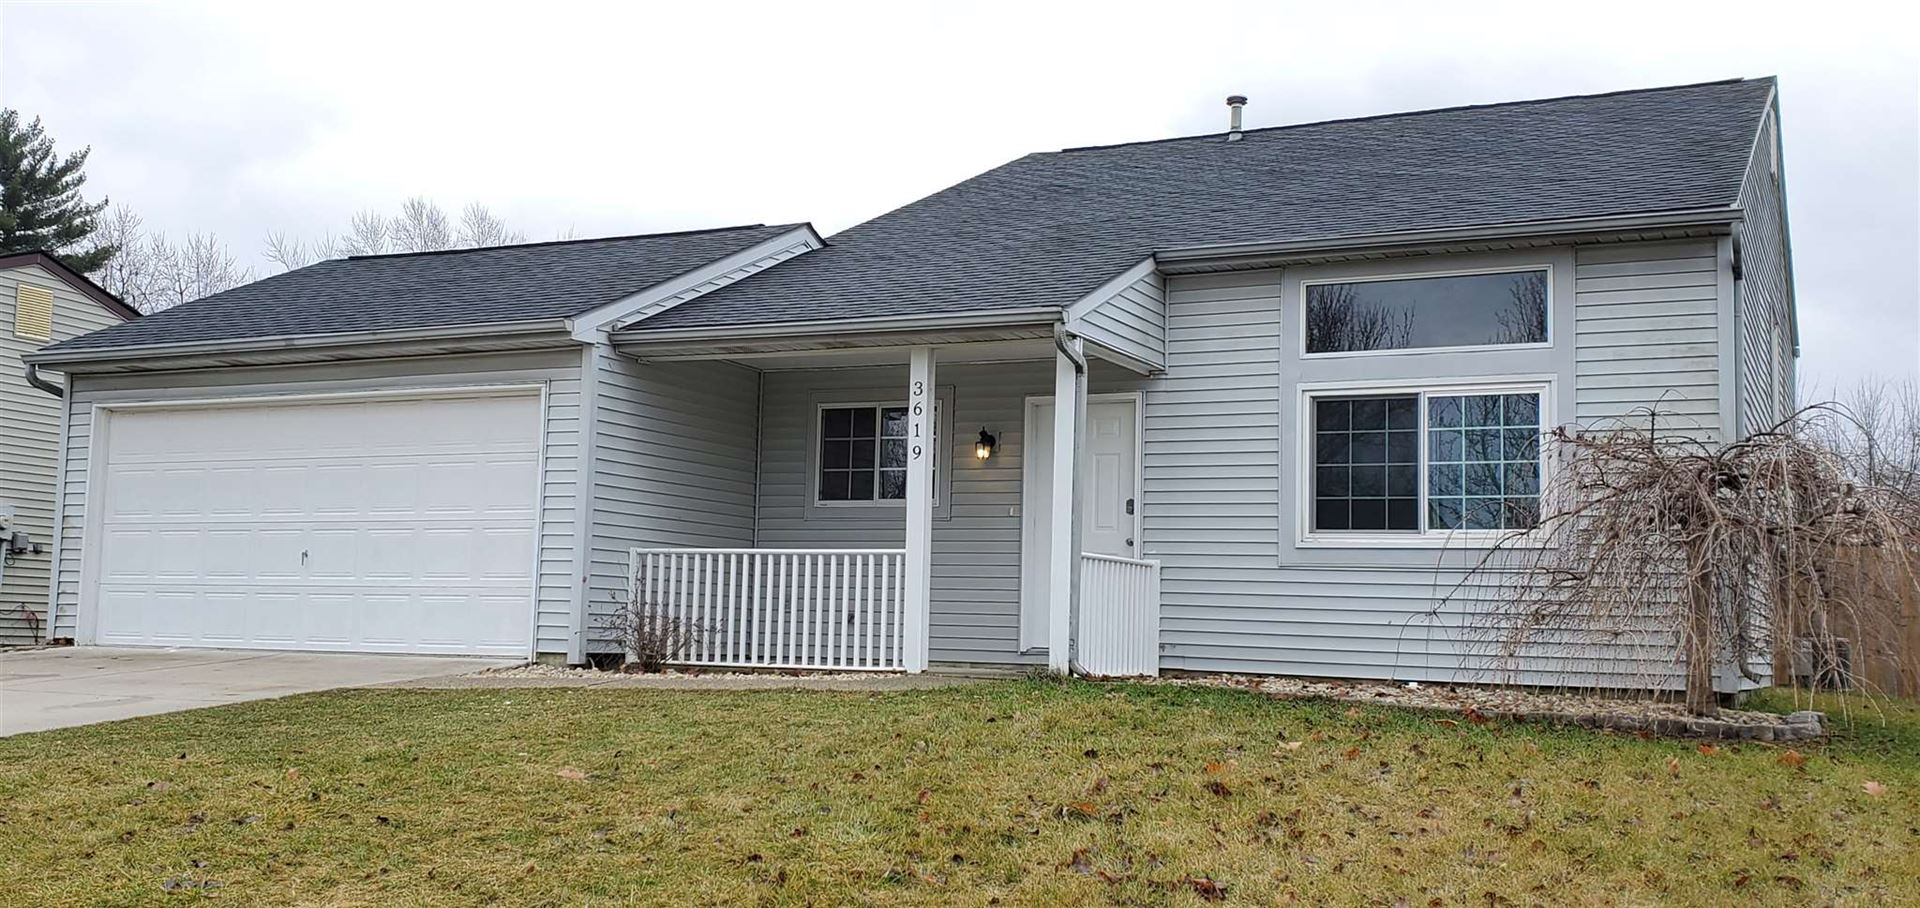 Fort Wayne, IN Homes For Sale | BHHS Indiana on